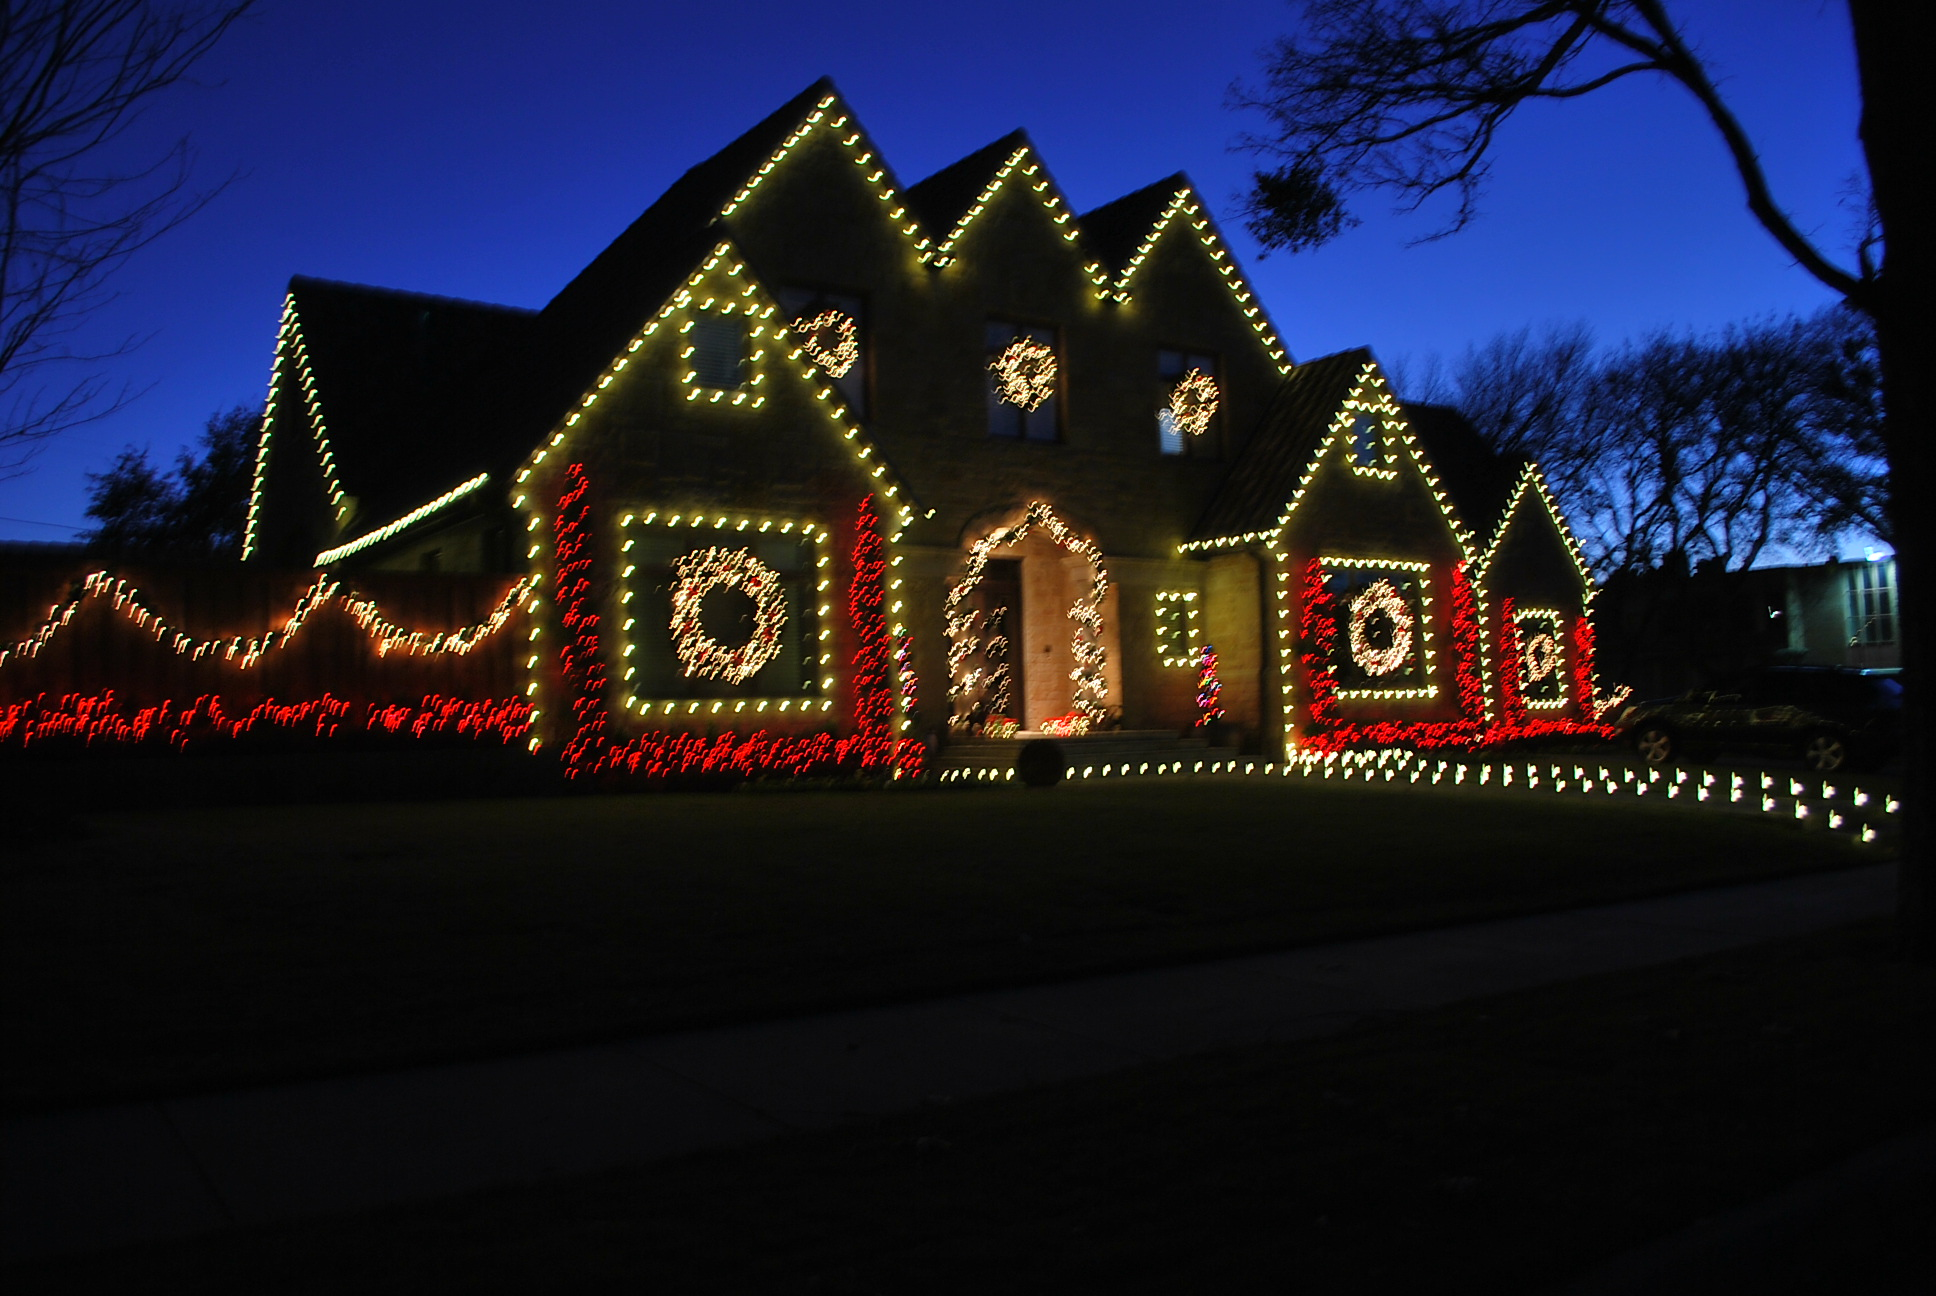 Synchronized Christmas Light Display